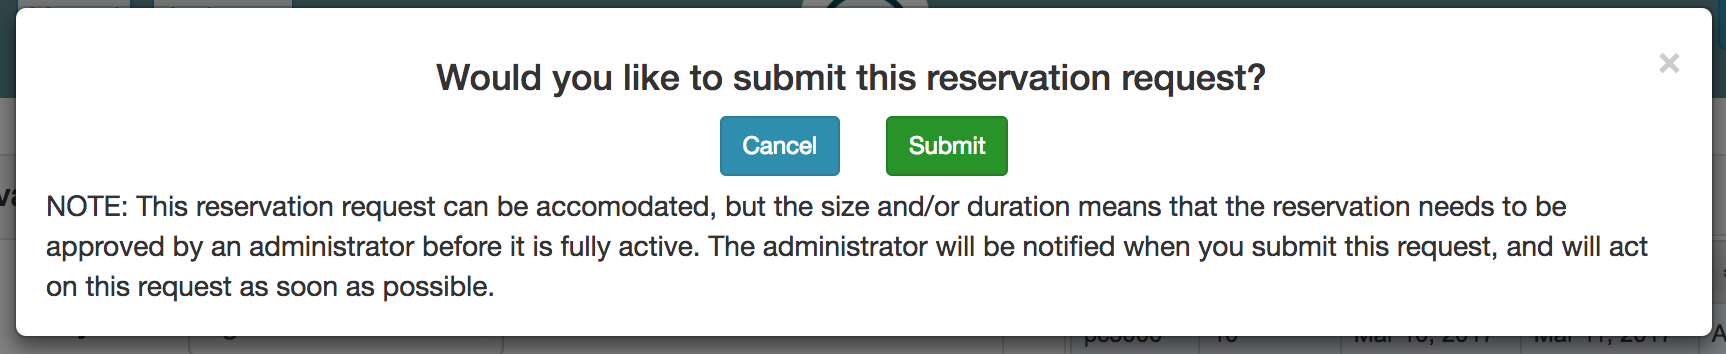 screenshots/elab/reservation-submit.png